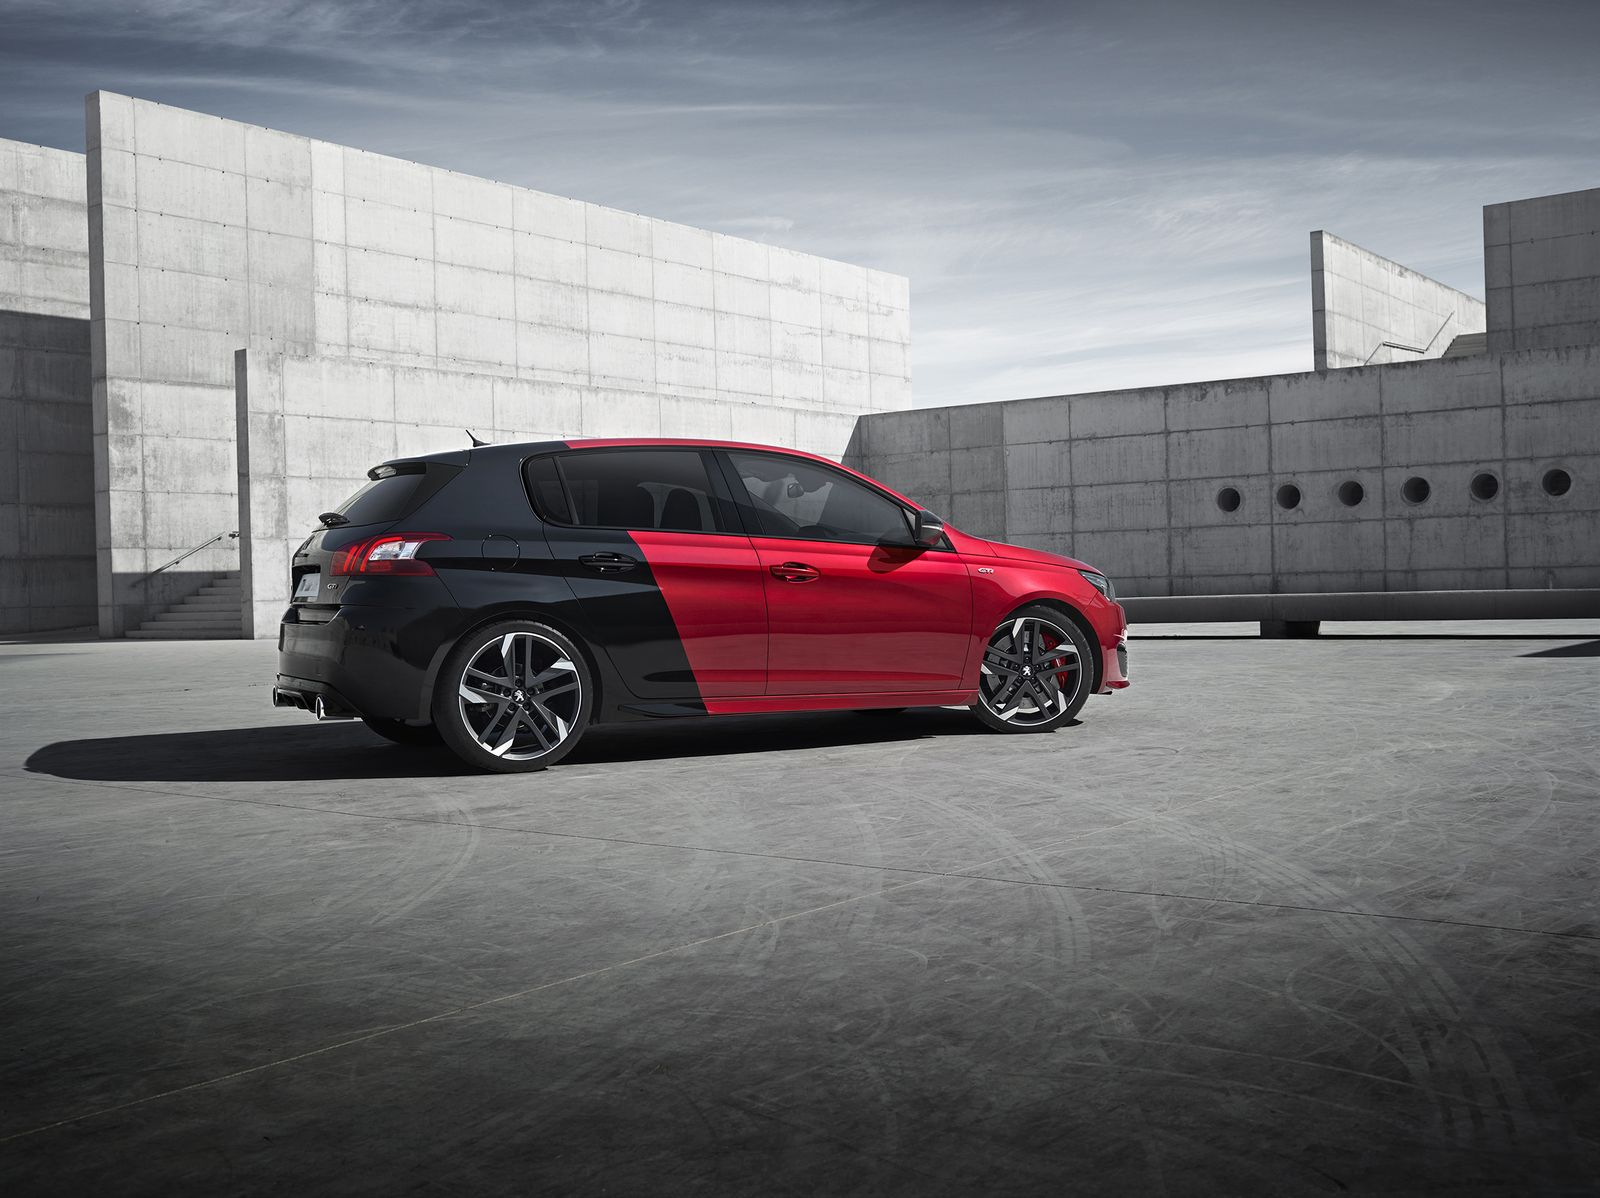 la nouvelle 308 gti by peugeot sport le regain de vogue. Black Bedroom Furniture Sets. Home Design Ideas